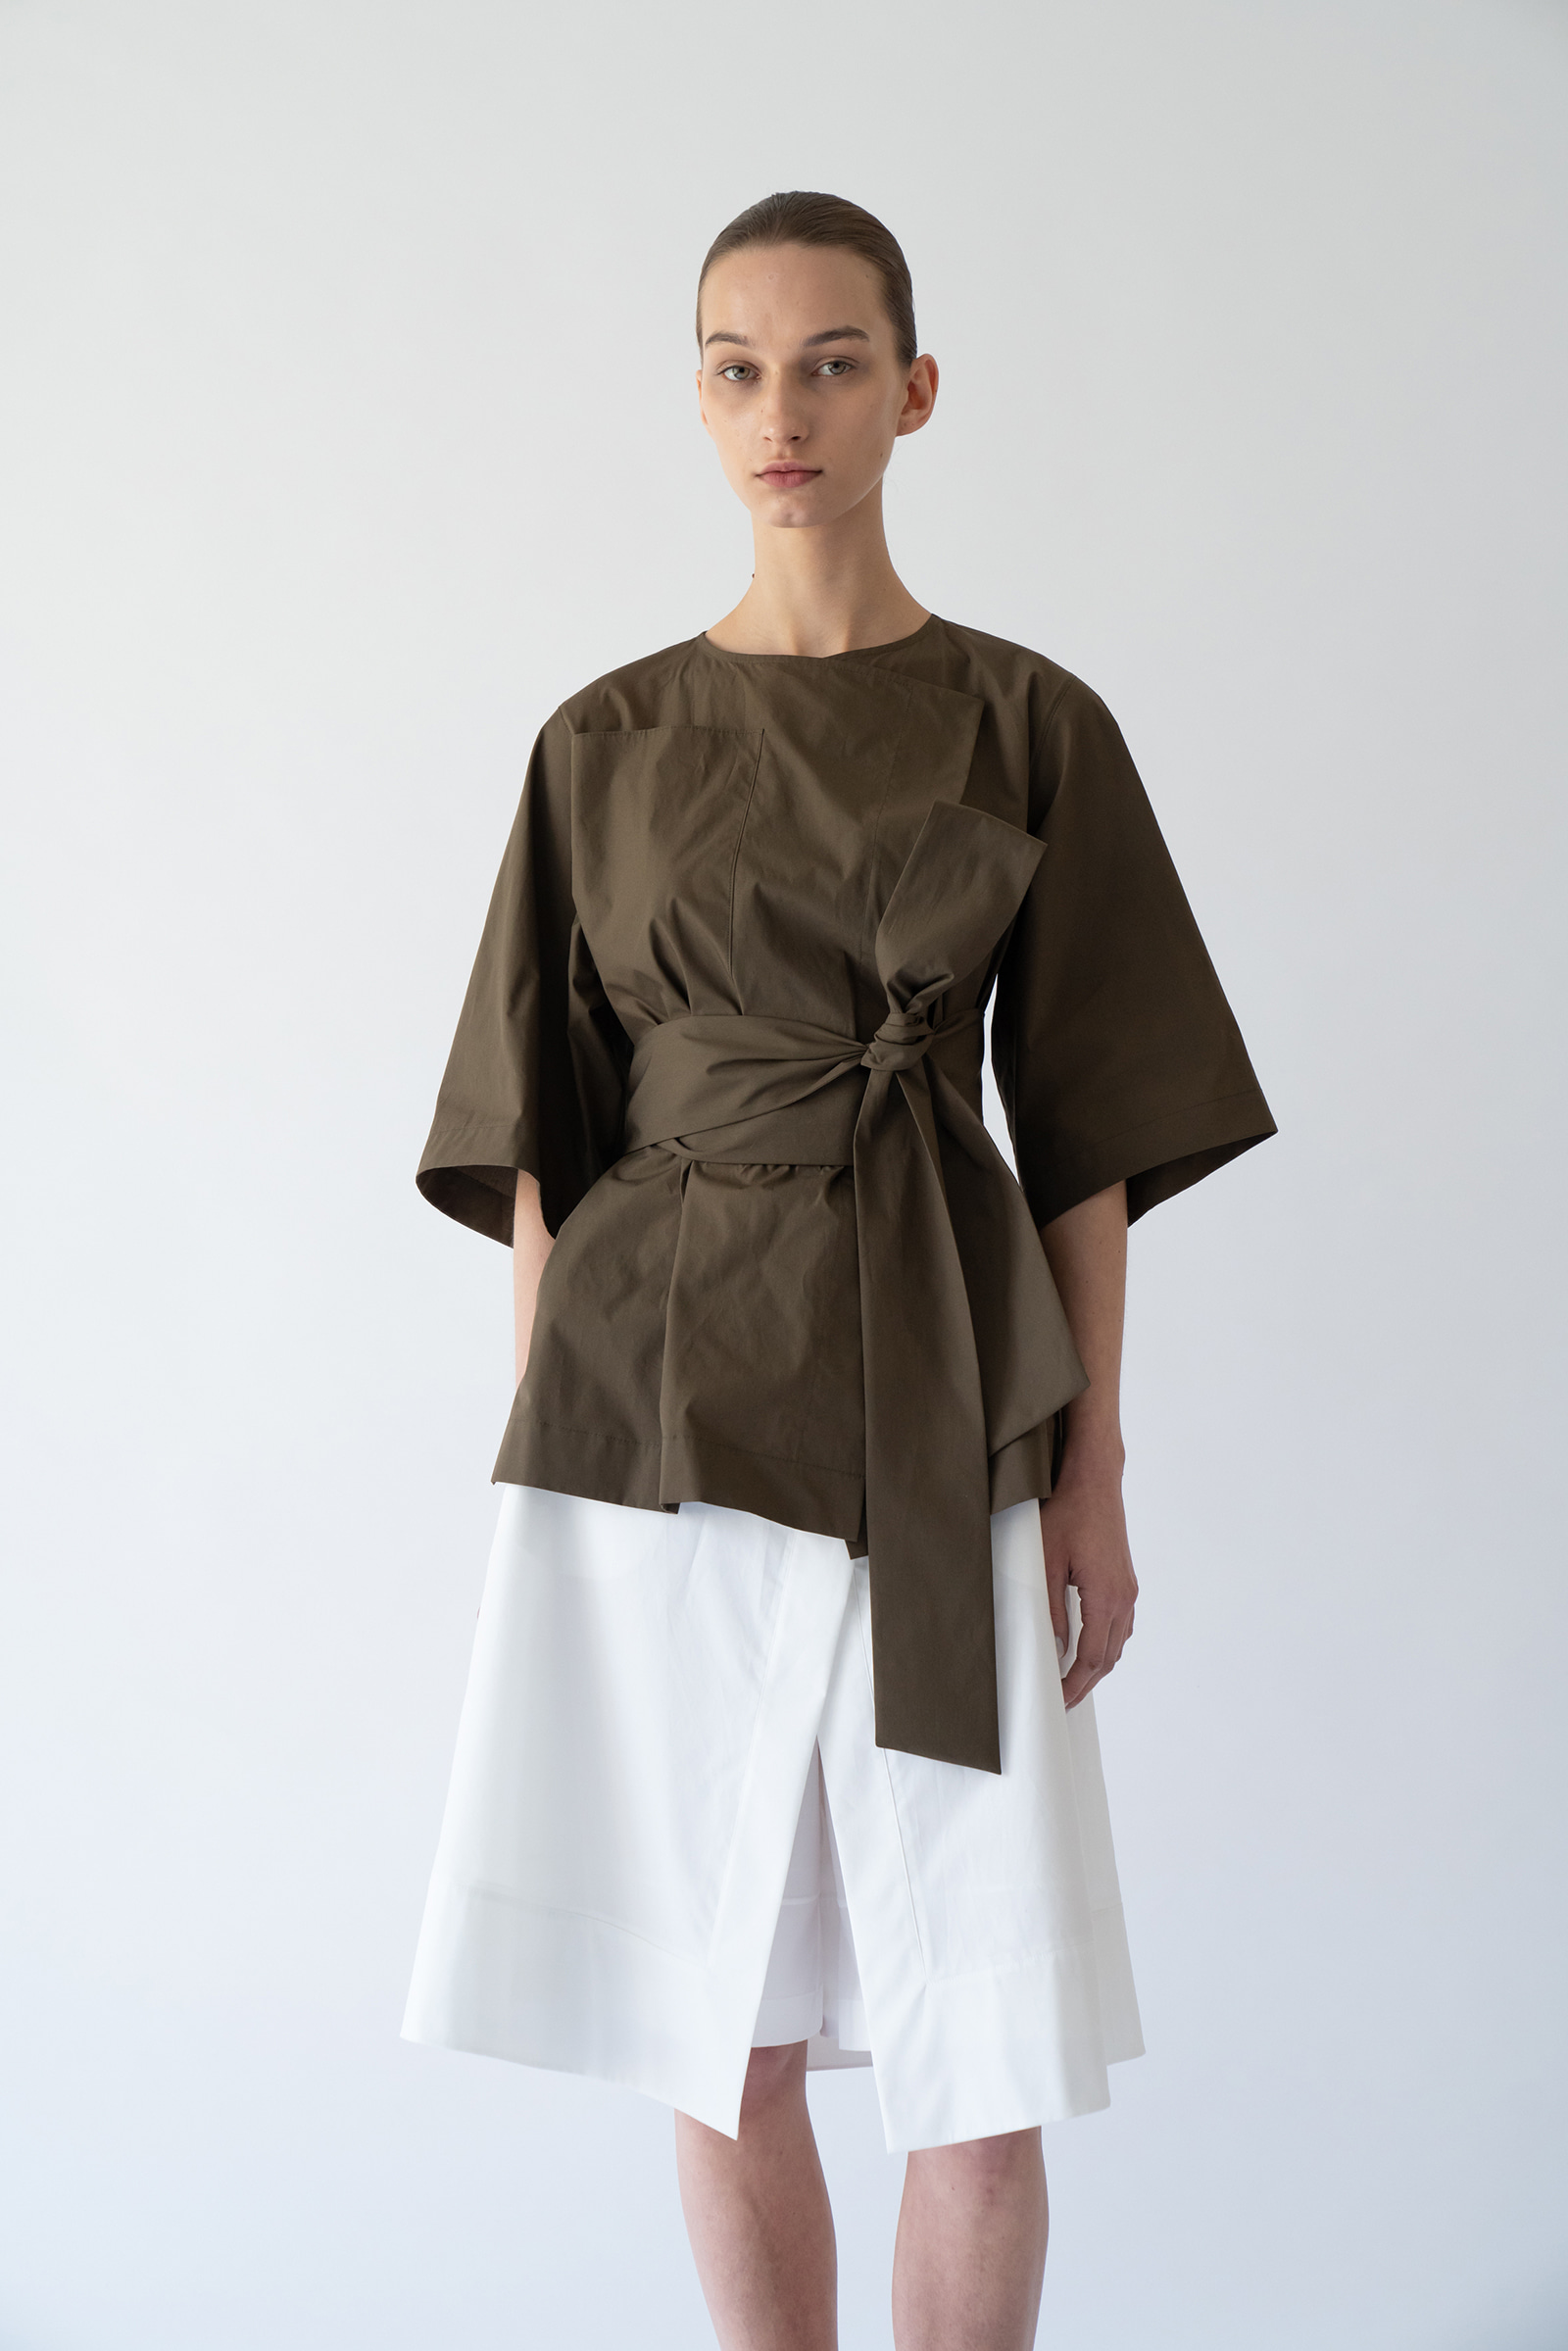 [Prestige] Belted summer outer _Khaki brown